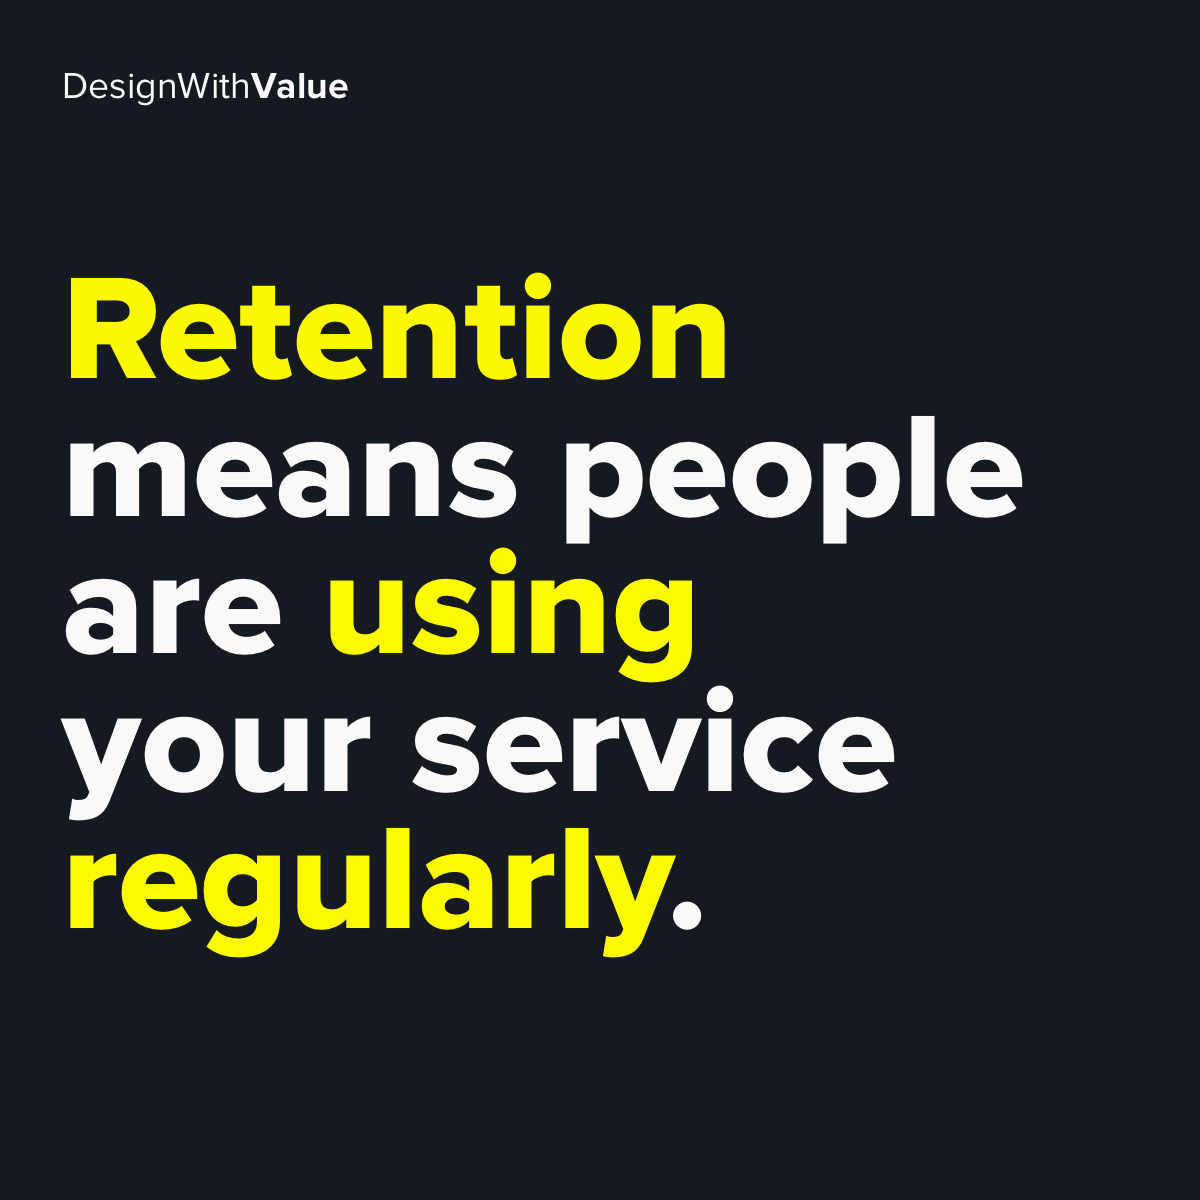 Retention means people are using your service regularly.